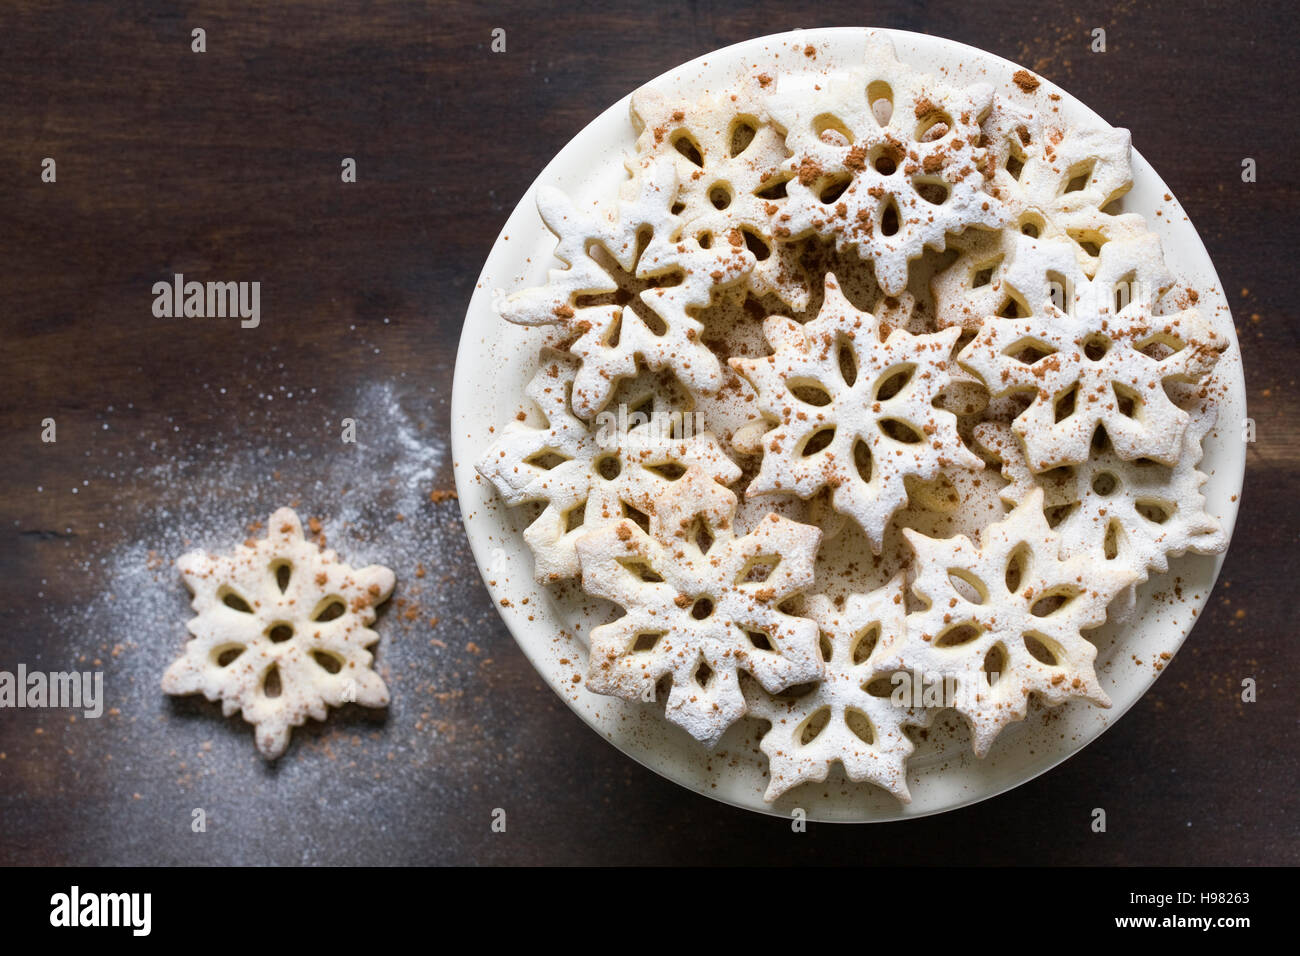 Homemade snowflake cookies on a plate. Stock Photo